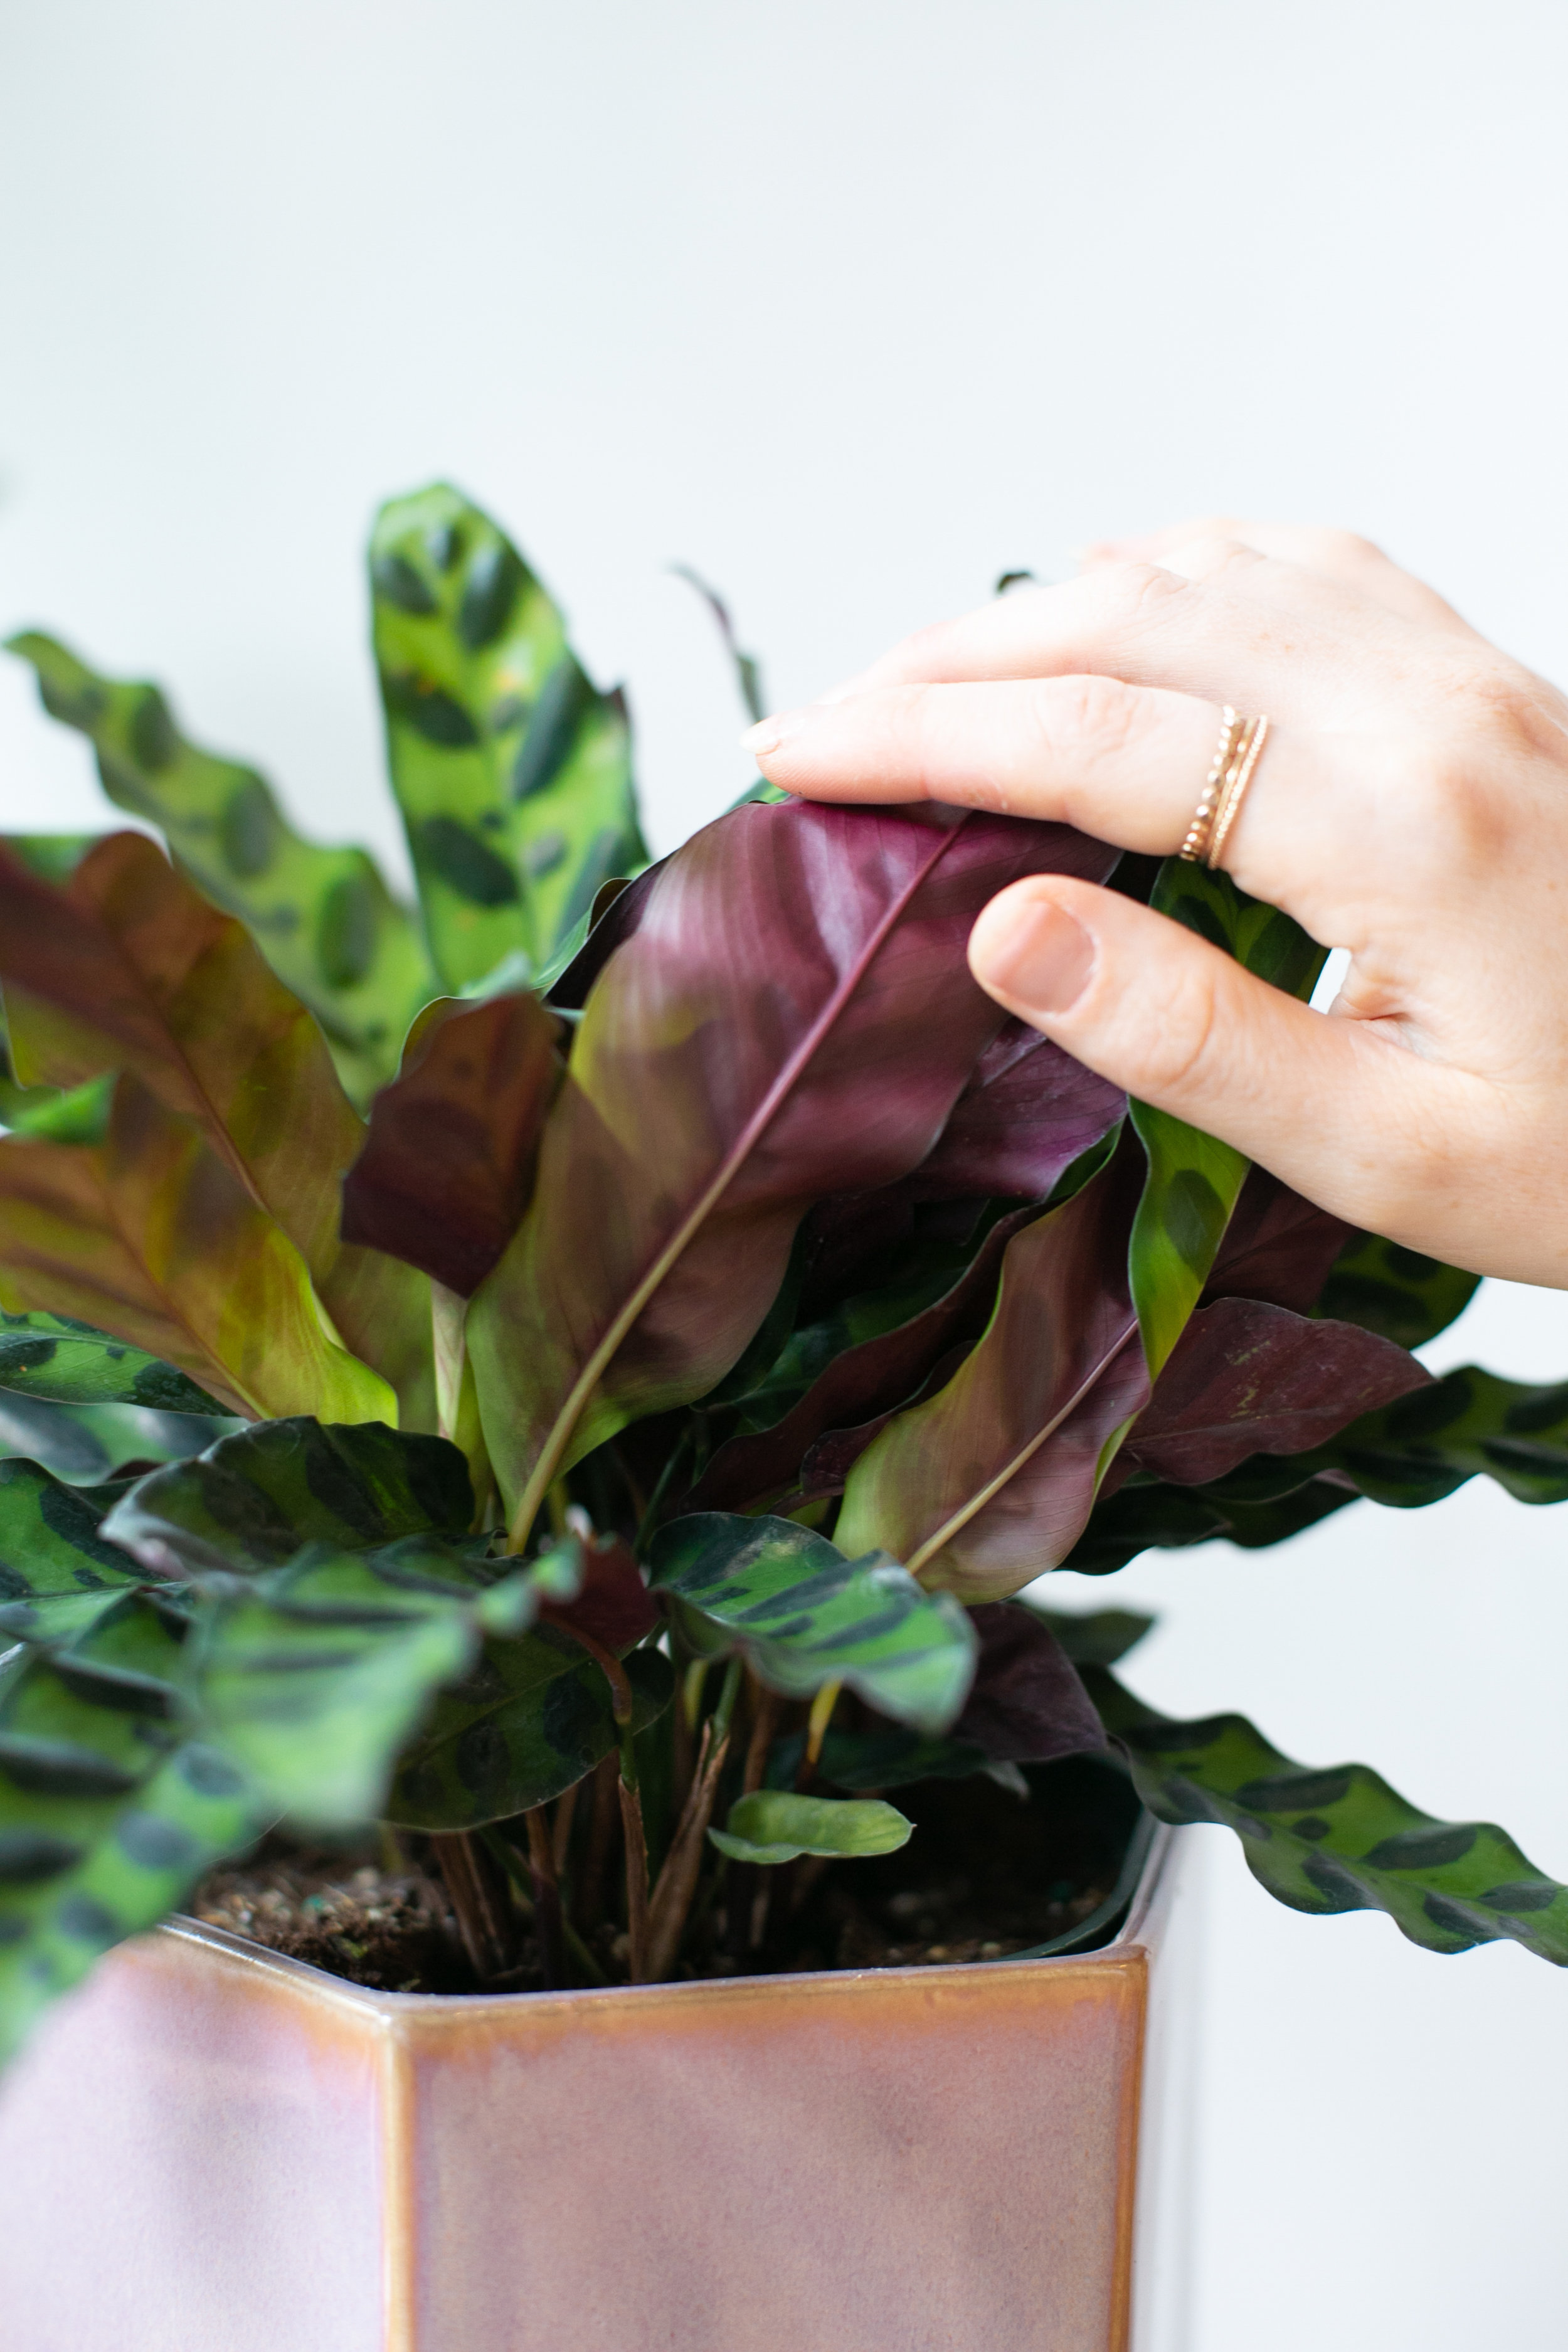 If you still notice signs of under or overwatering on your tropical species, such as this rattlesnake calathea, after you've given your plant a good drink of H2O, try increasing the humidity before watering again. This tip does not apply to cacti and succulents.